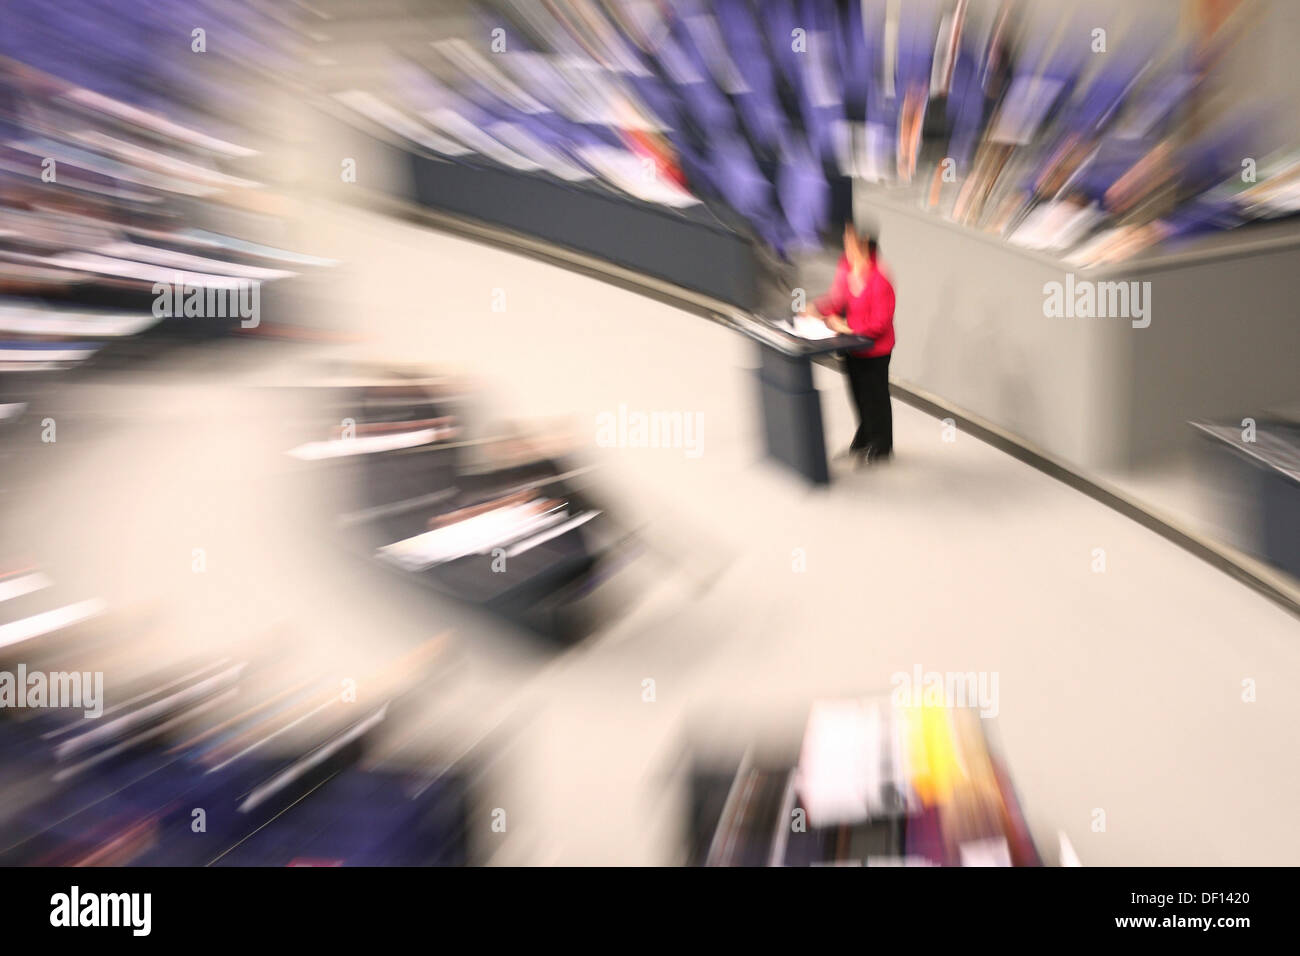 Berlin, Germany, in the plenary session of the German Bundestag - Stock Image